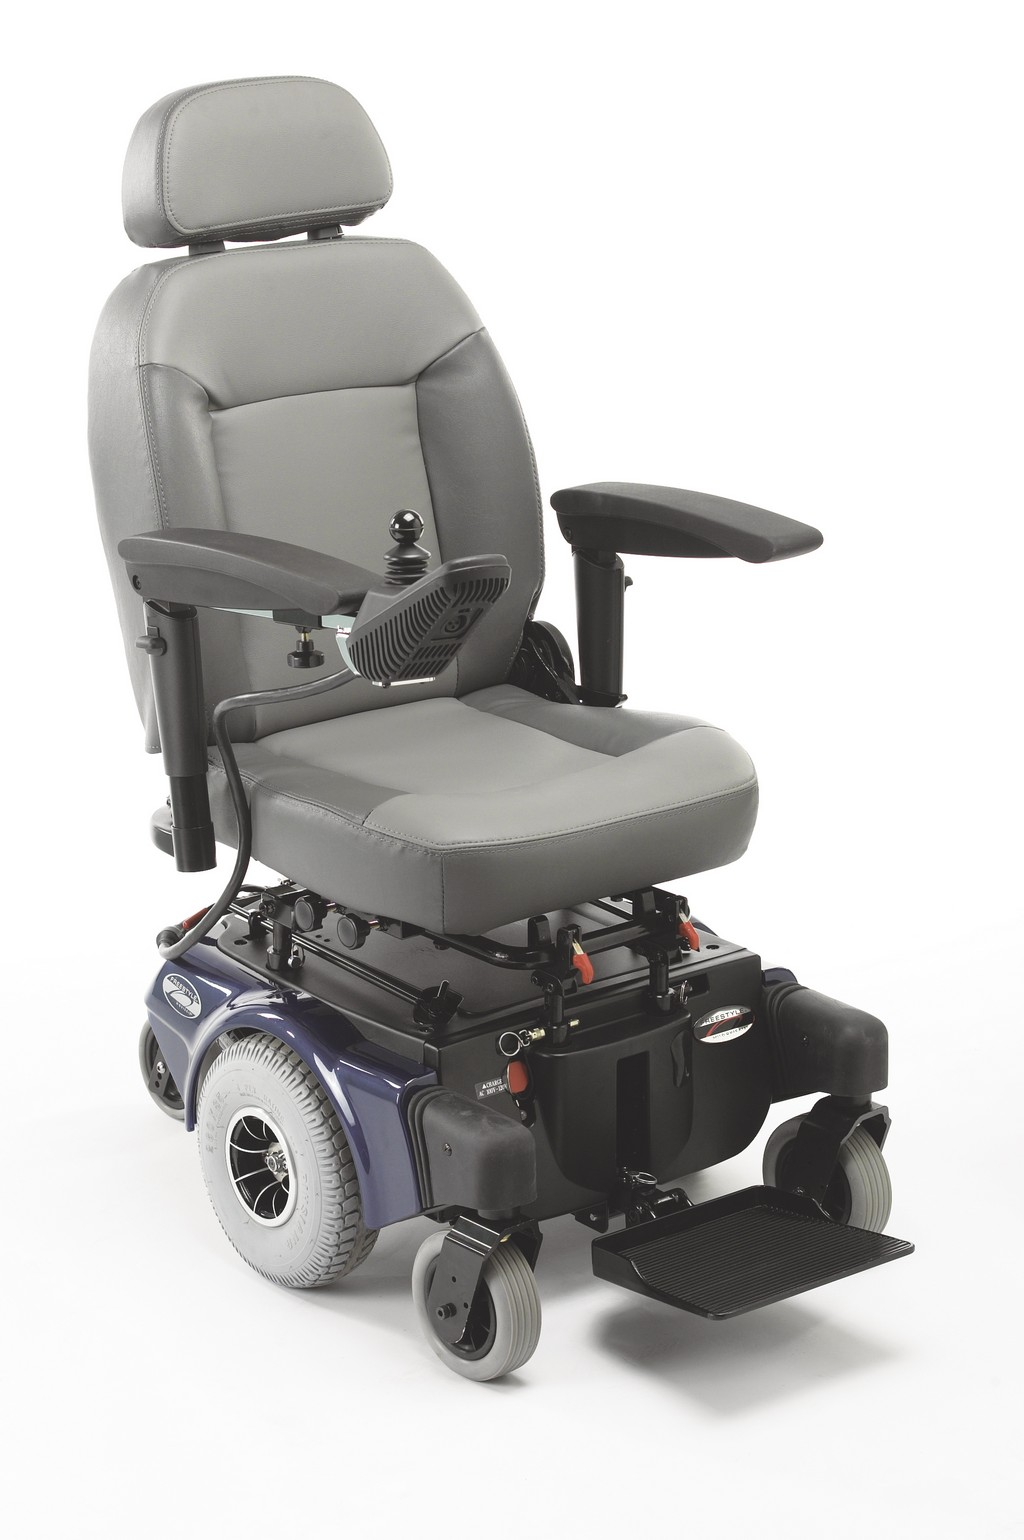 electric wheelchair cadence, rear wheel drive power chairs, extreme power wheelchairs, rascal power wheelchair